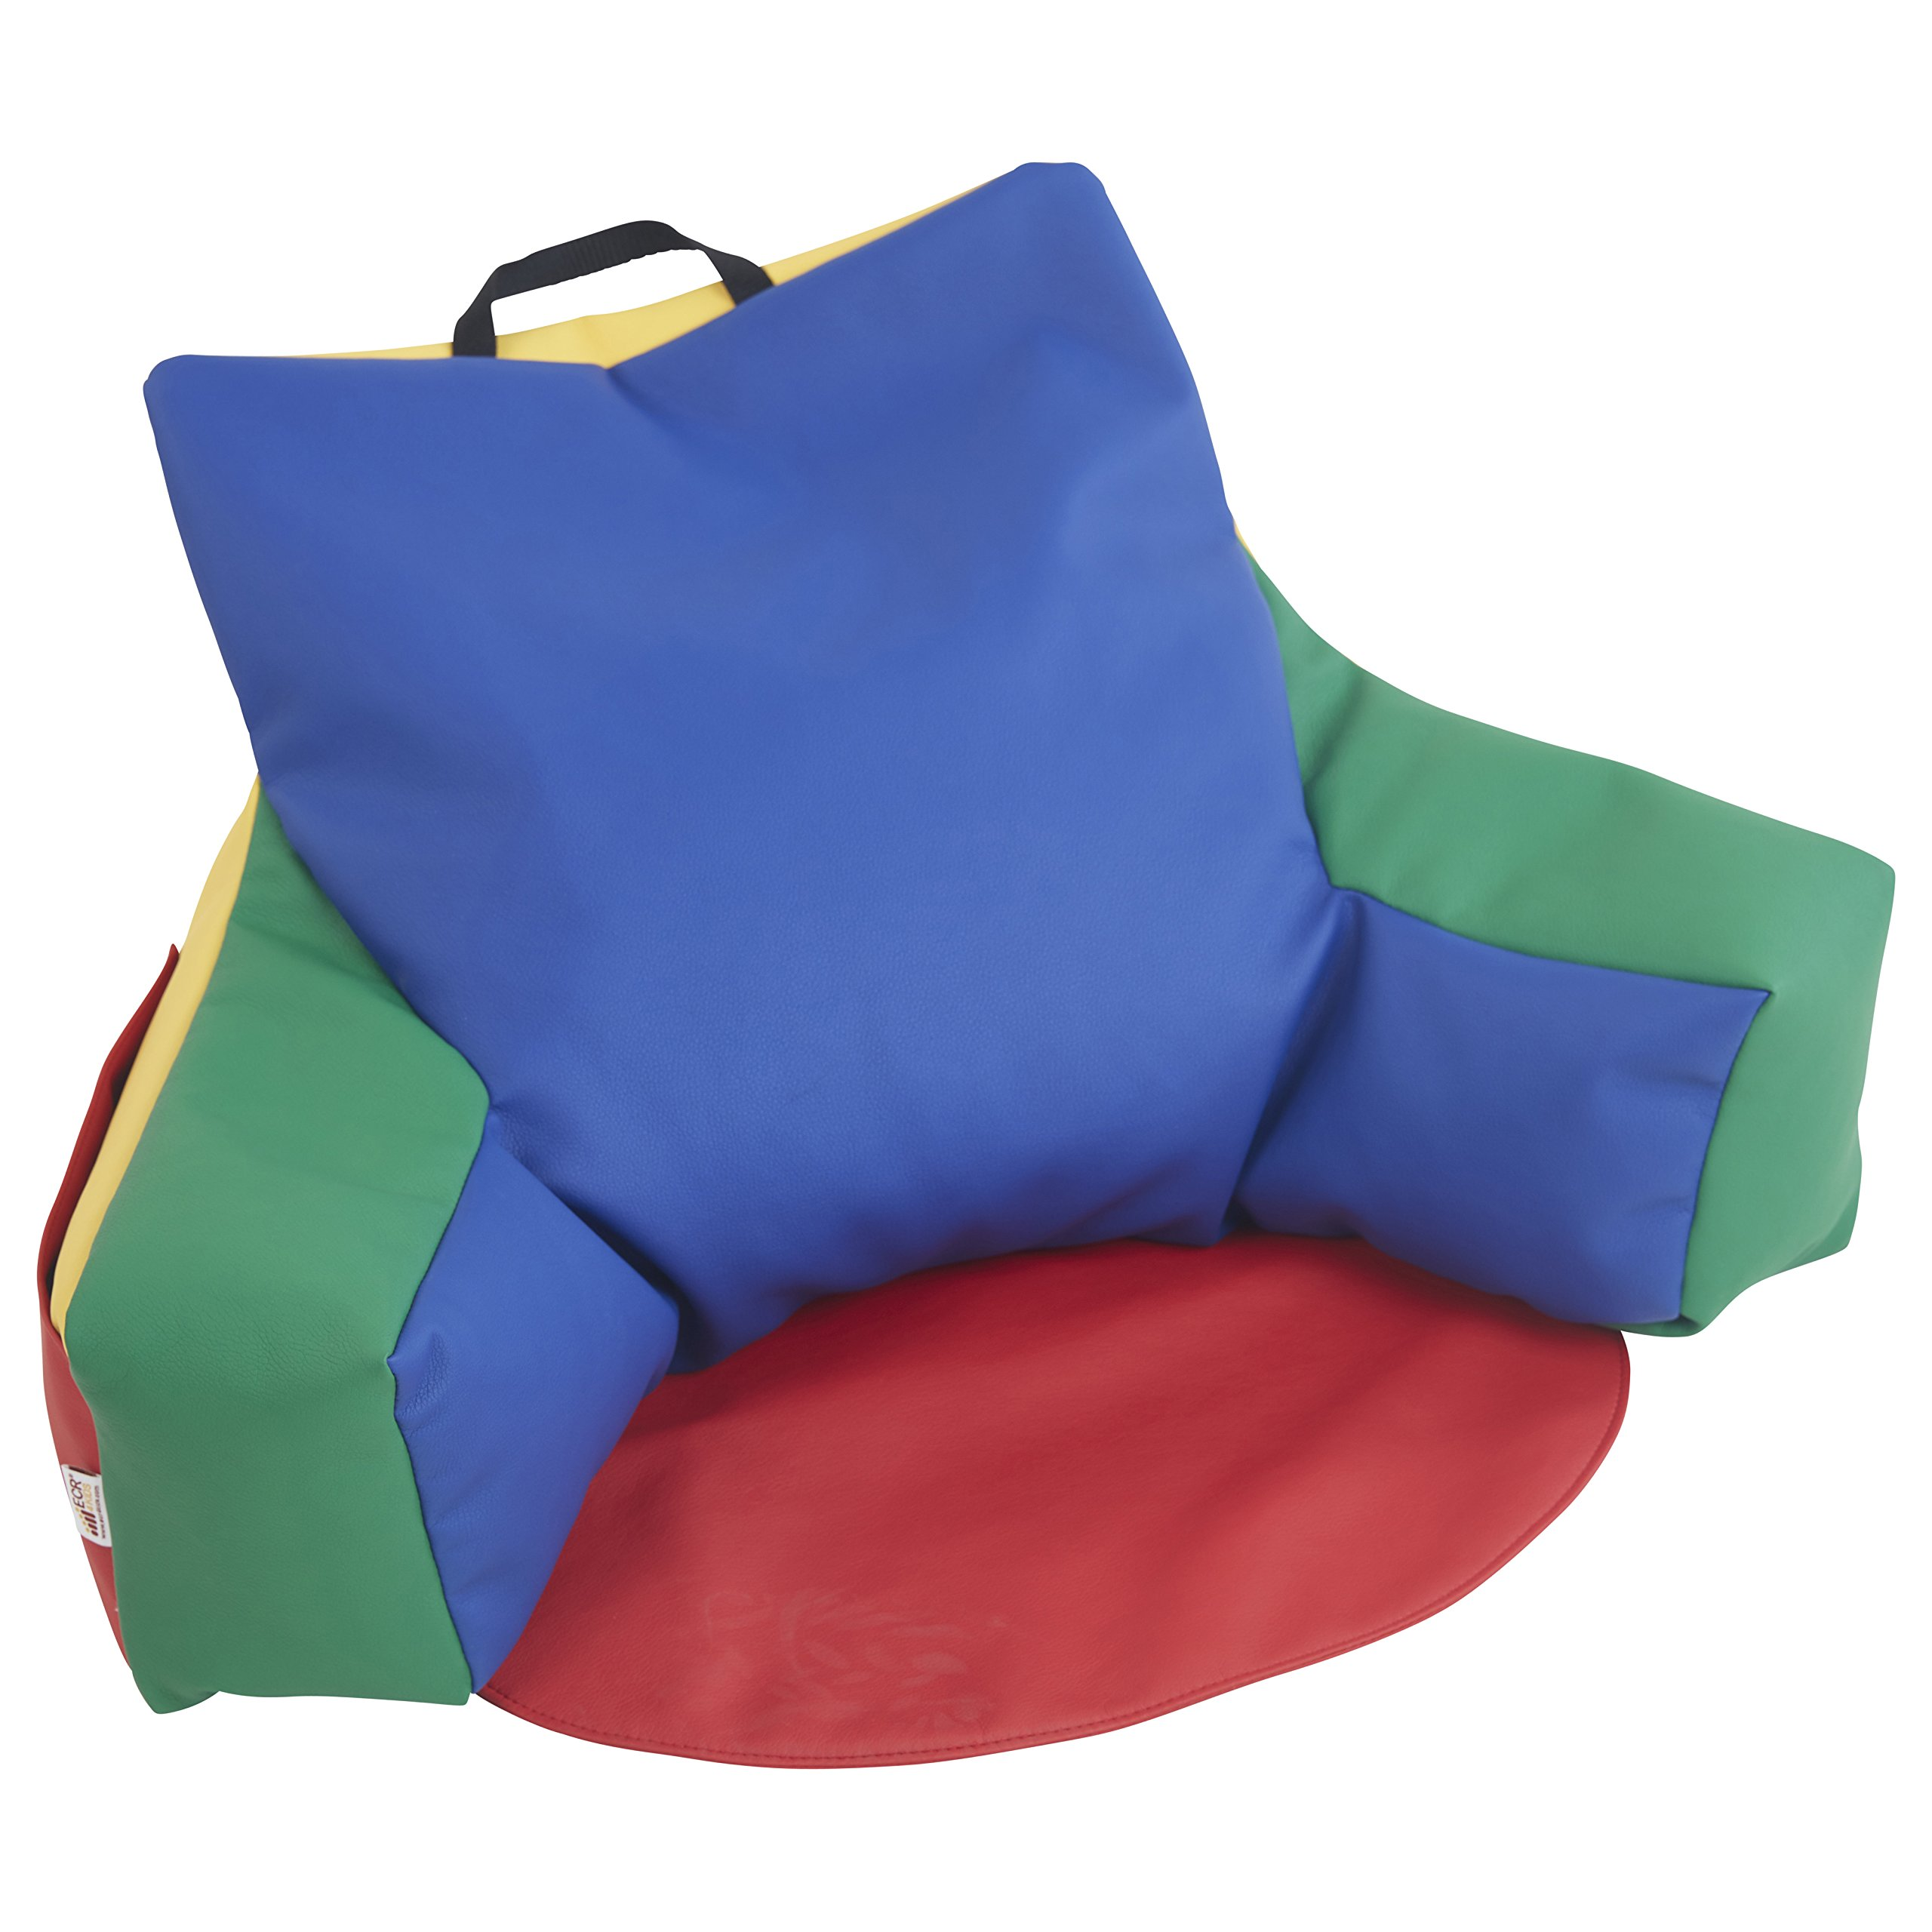 ECR4Kids Relax-N-Read Bean Bag Back Pillow Chair with Storage Pockets, Assorted